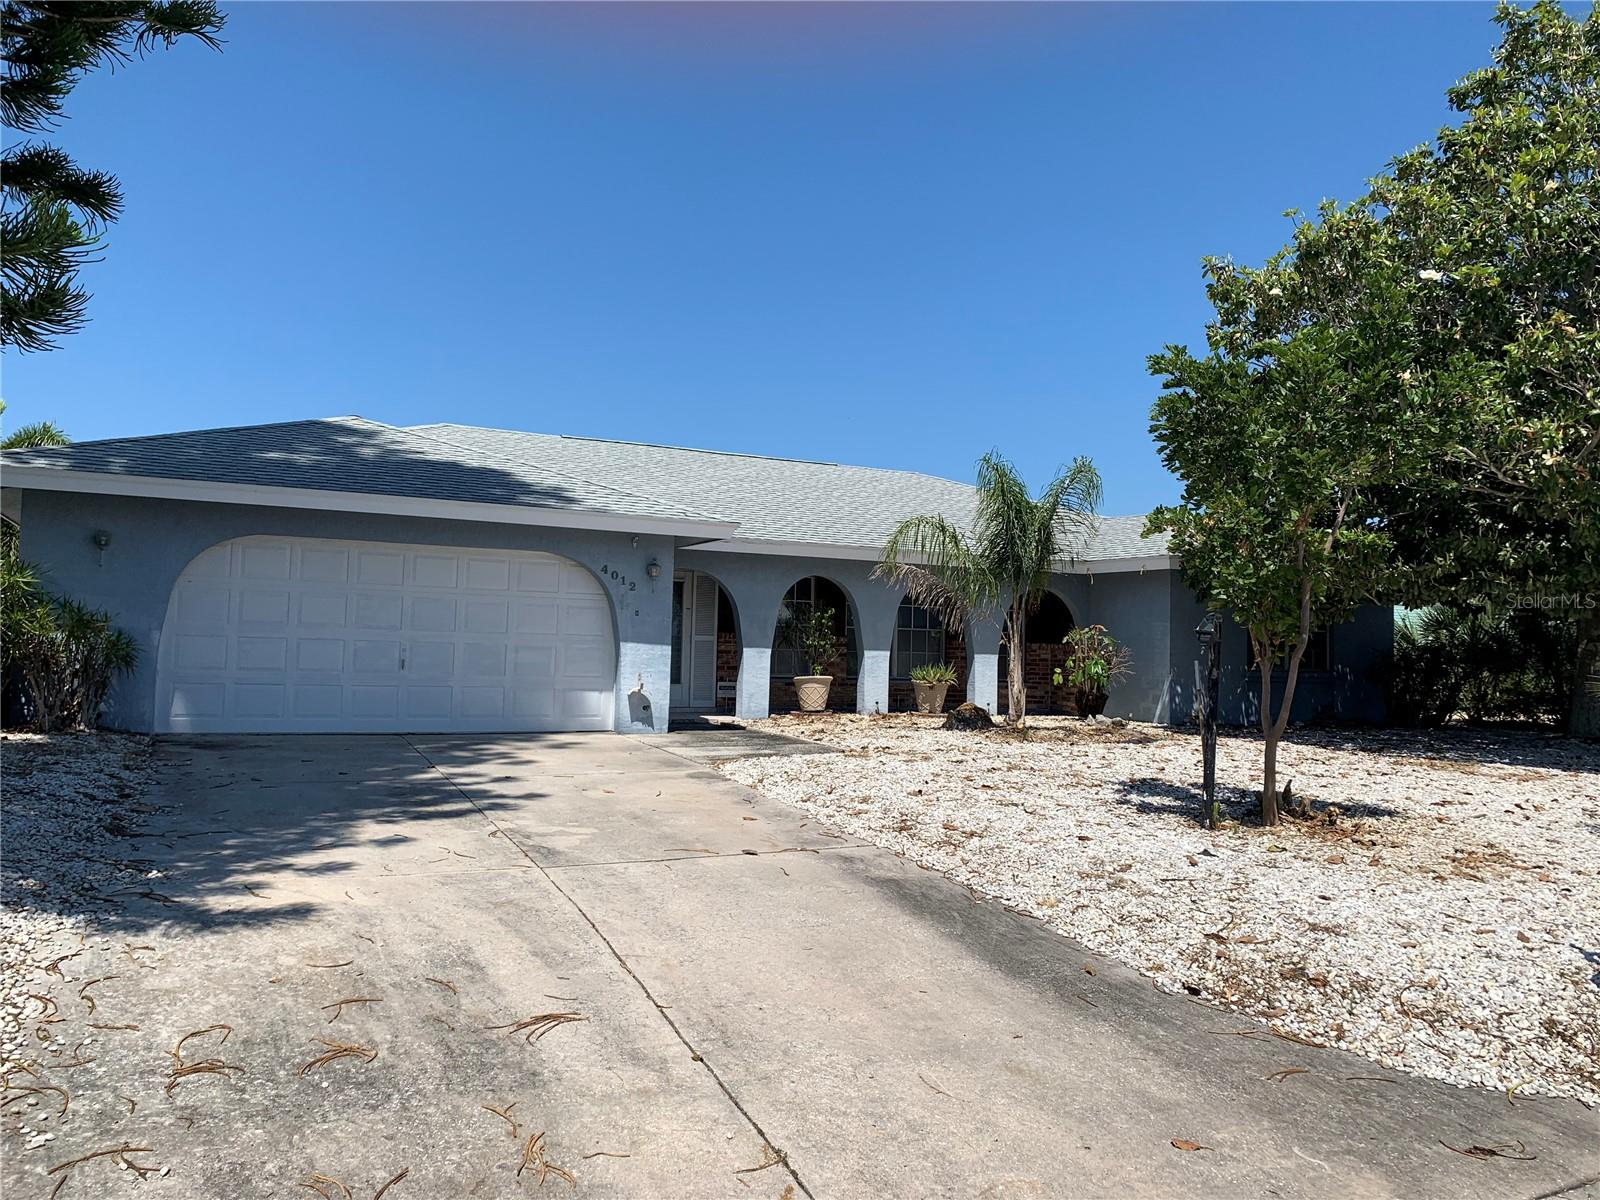 Primary photo of recently sold MLS# A4496558